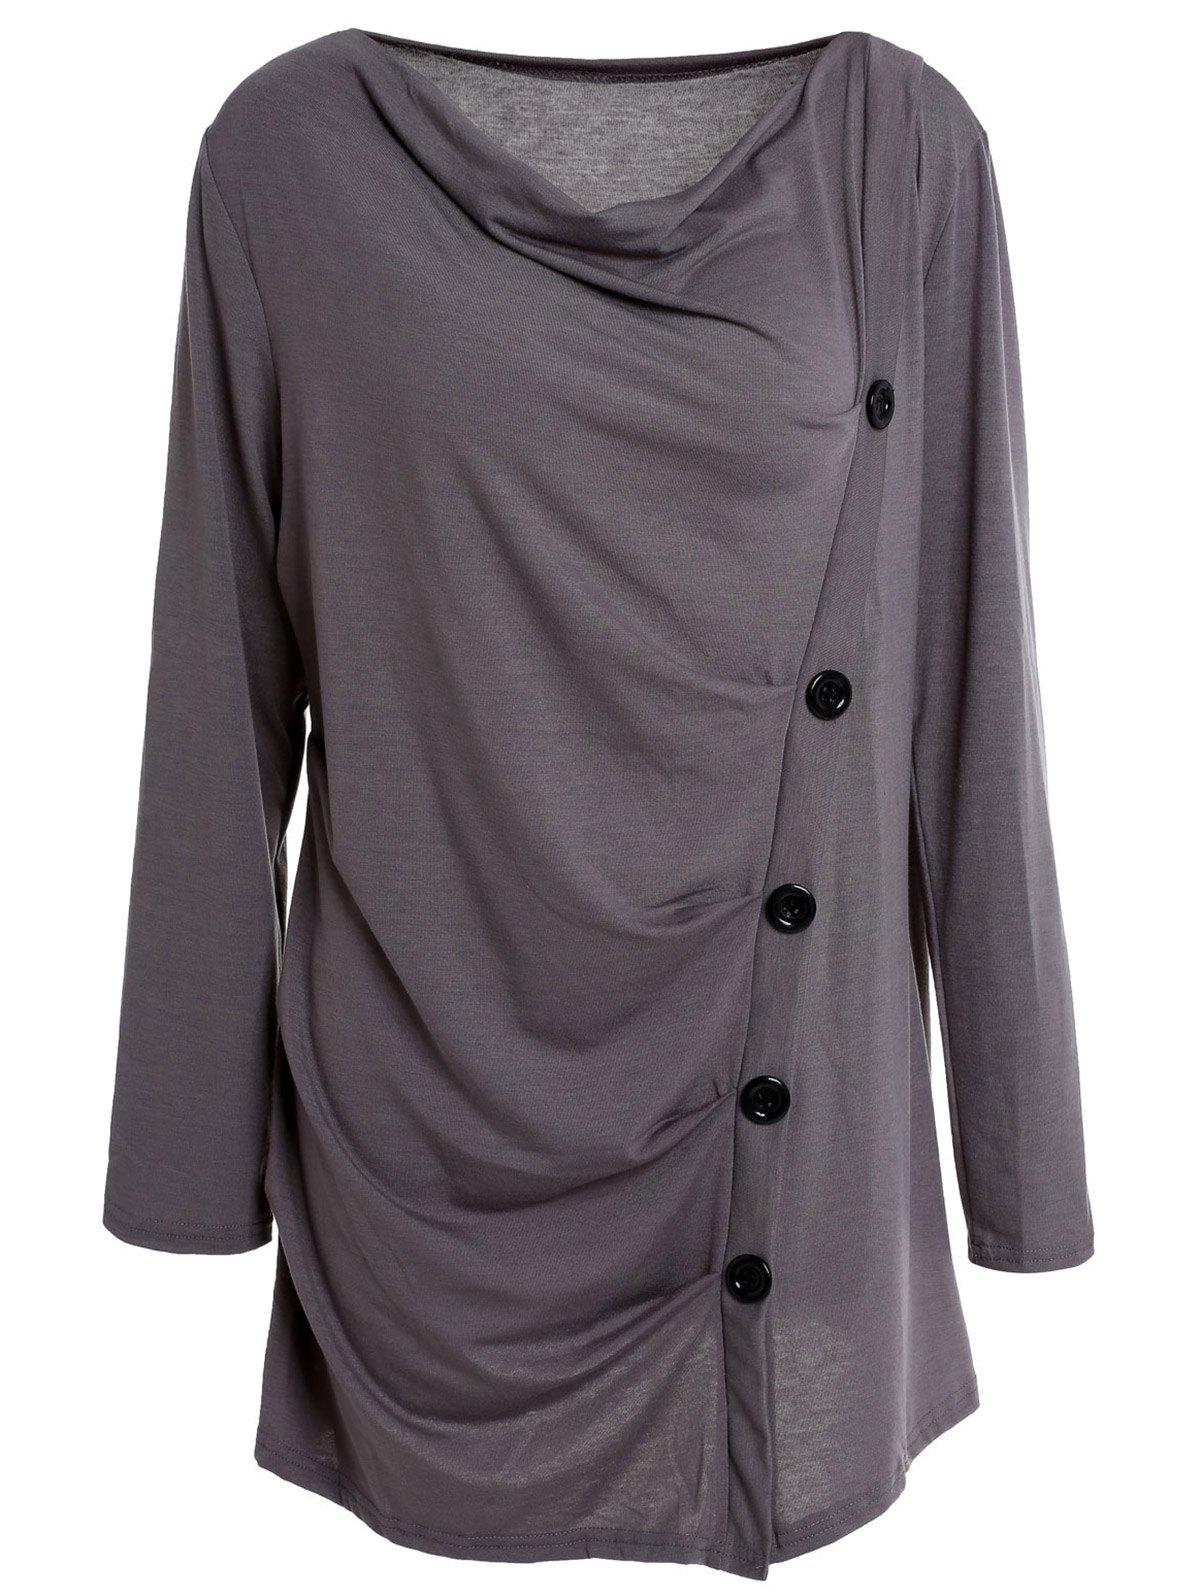 Stylish Long Sleeve Cowl Neck Solid Color Draped Women's T-Shirt - GRAY M